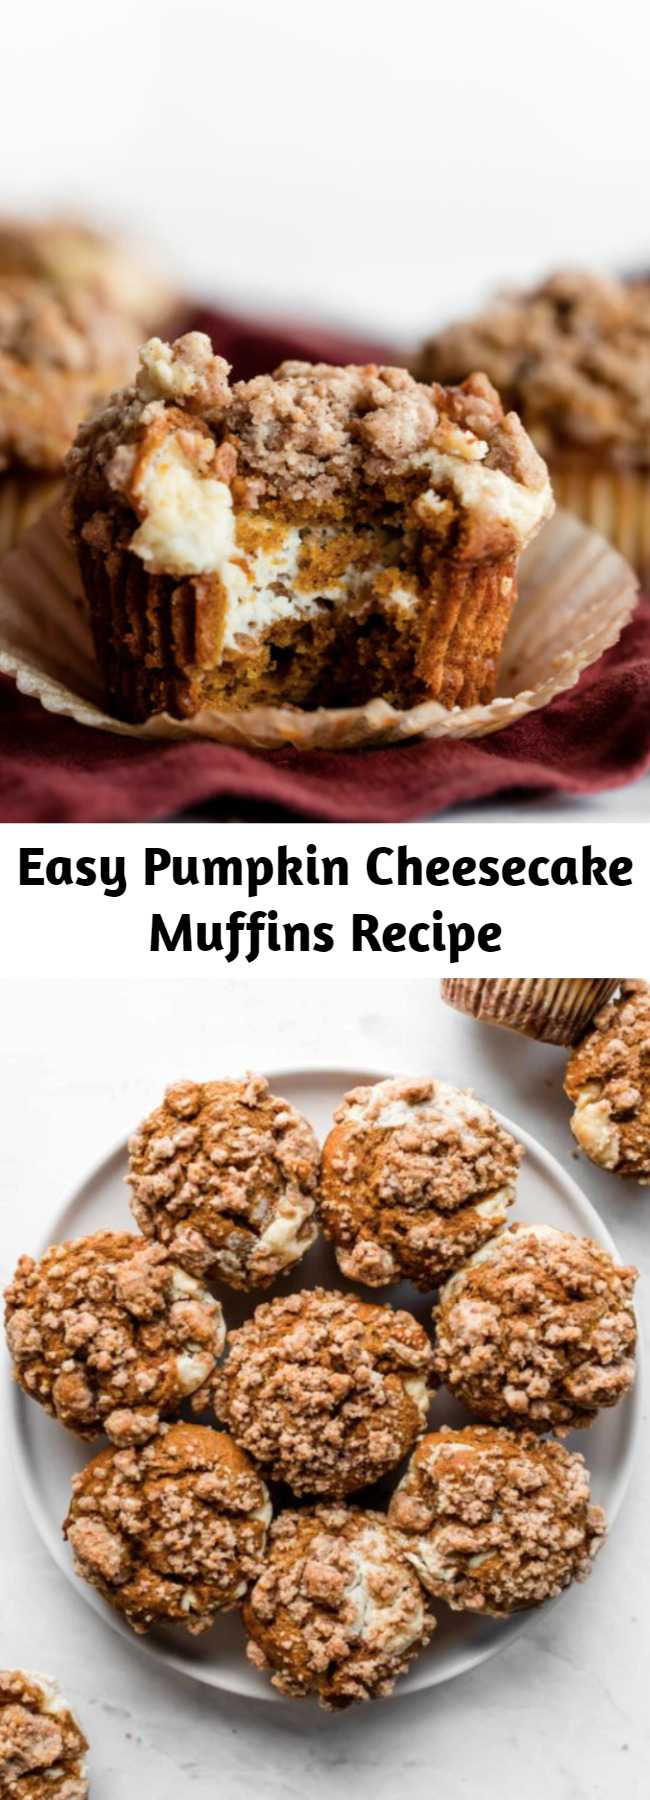 Easy Pumpkin Cheesecake Muffins Recipe - Like a delicious pumpkin roll, these pumpkin cheesecake muffins combine perfectly spiced pumpkin muffins with cream cheese filling. Top the muffins with brown sugar crumb cake topping and you have an absolutely irresistible pumpkin spice breakfast treat.